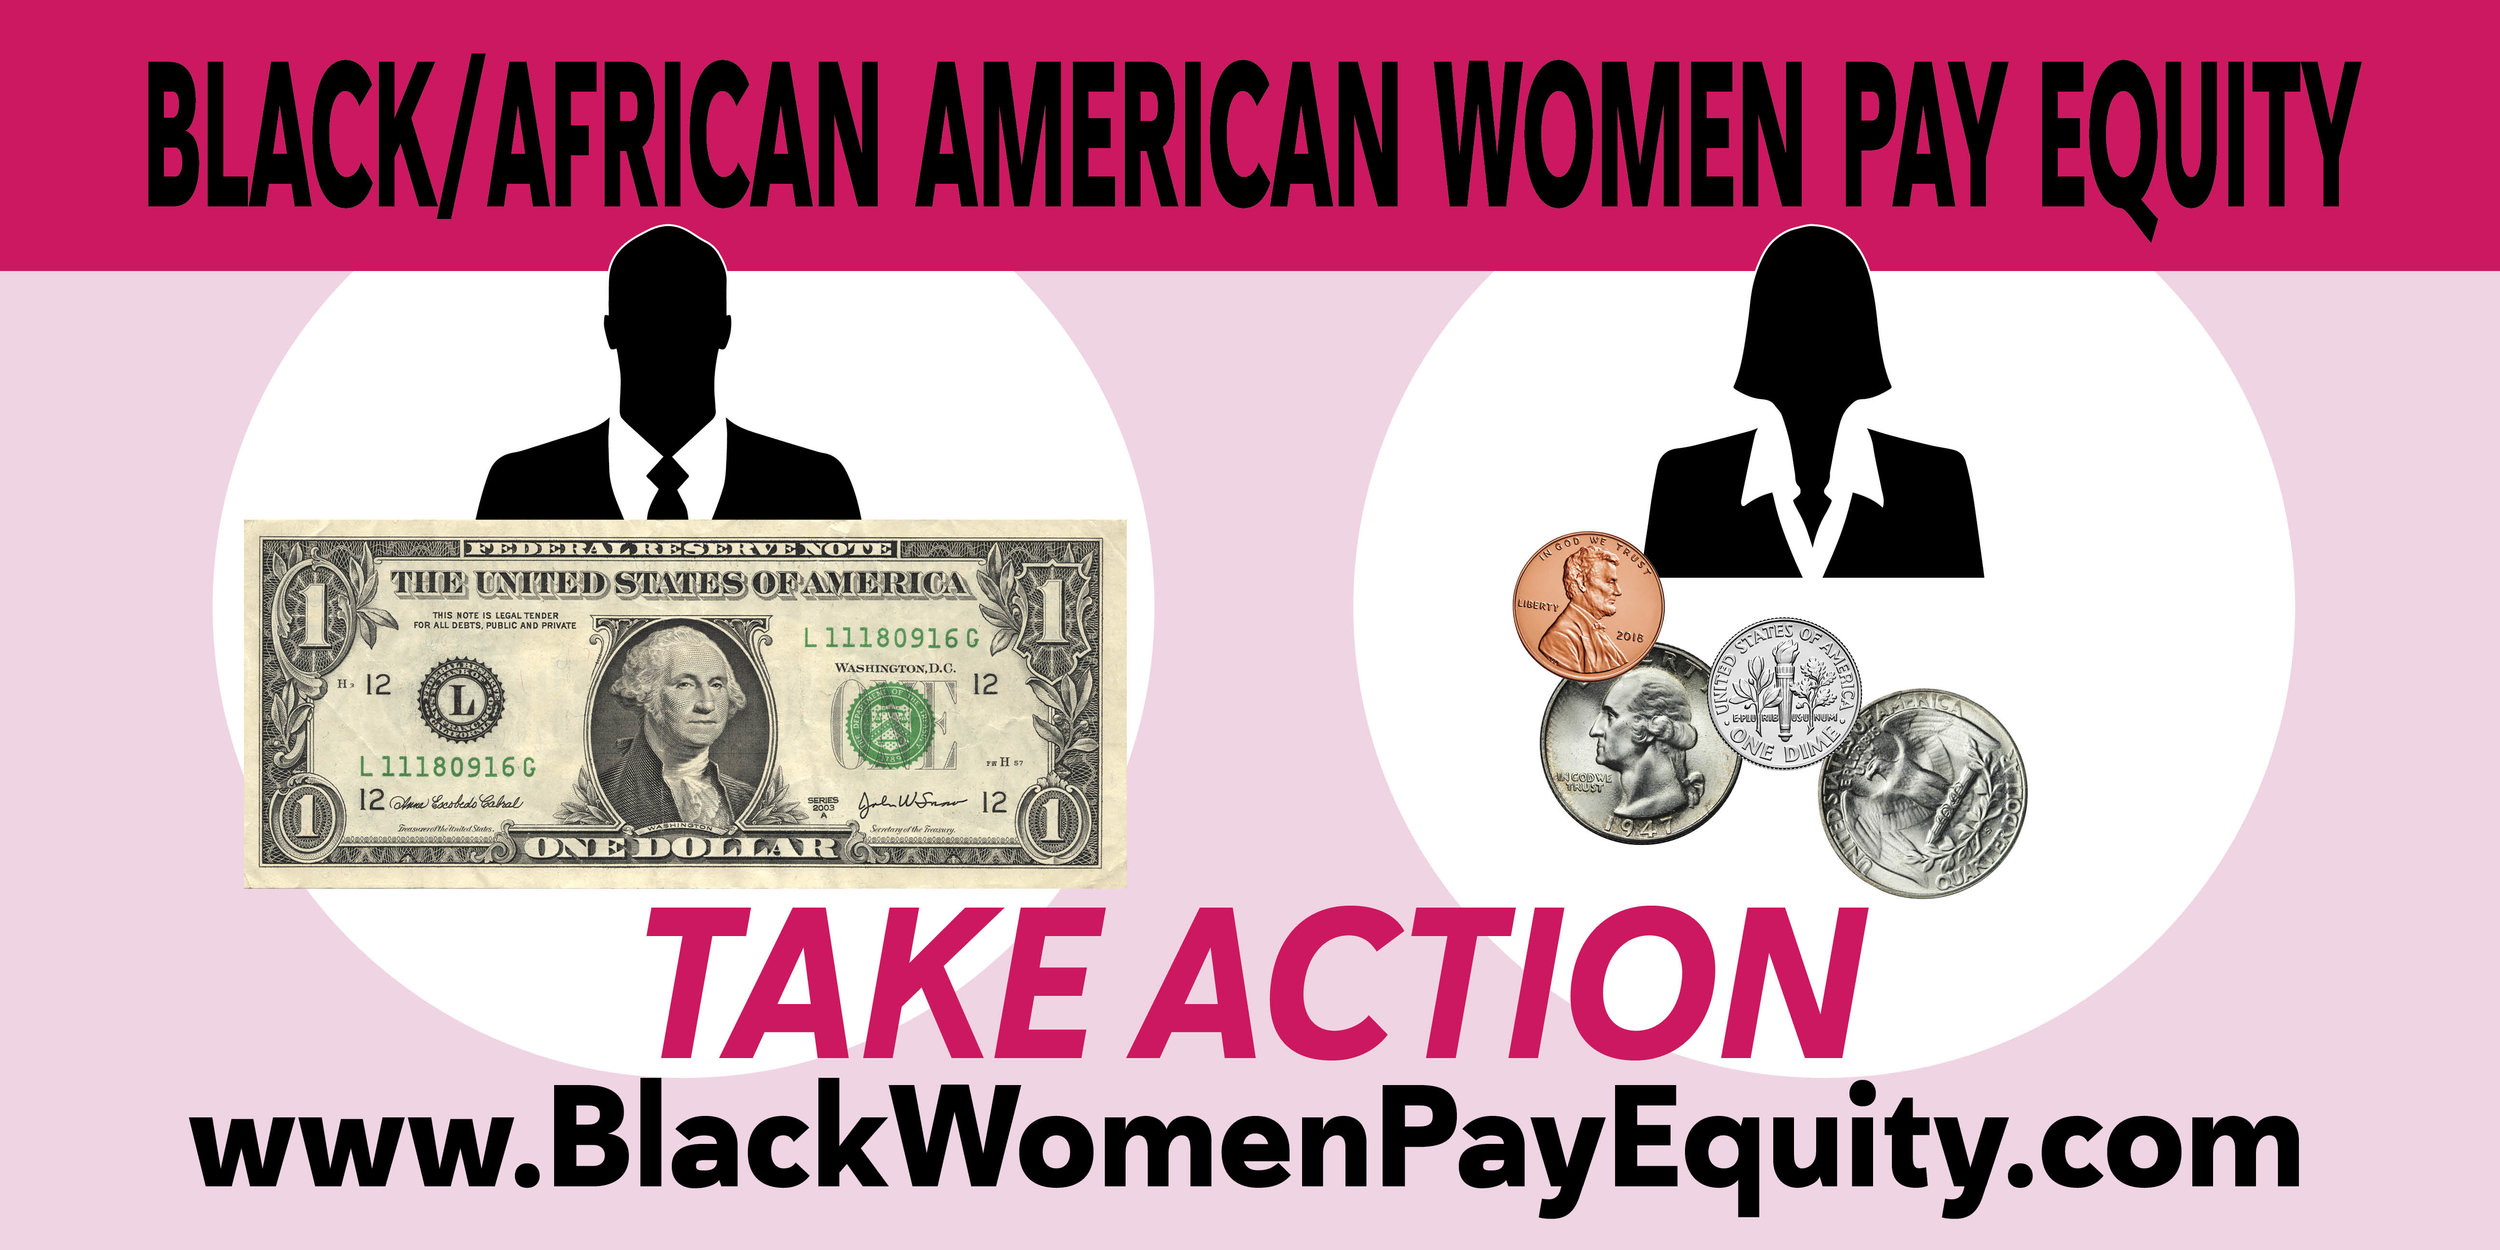 Pay Equity for Black/African American Women